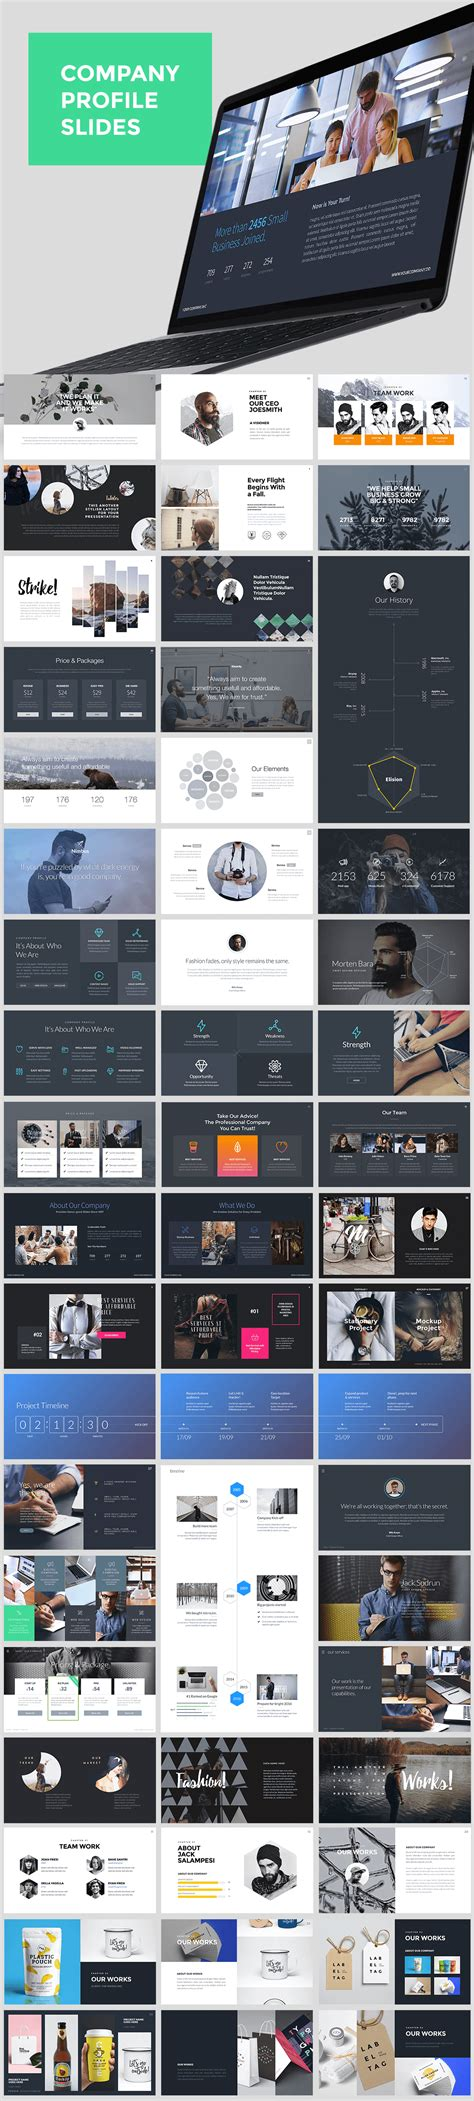 do keynote themes work on powerpoint 20 powerpoint 20 keynote templates with 10 000 slides